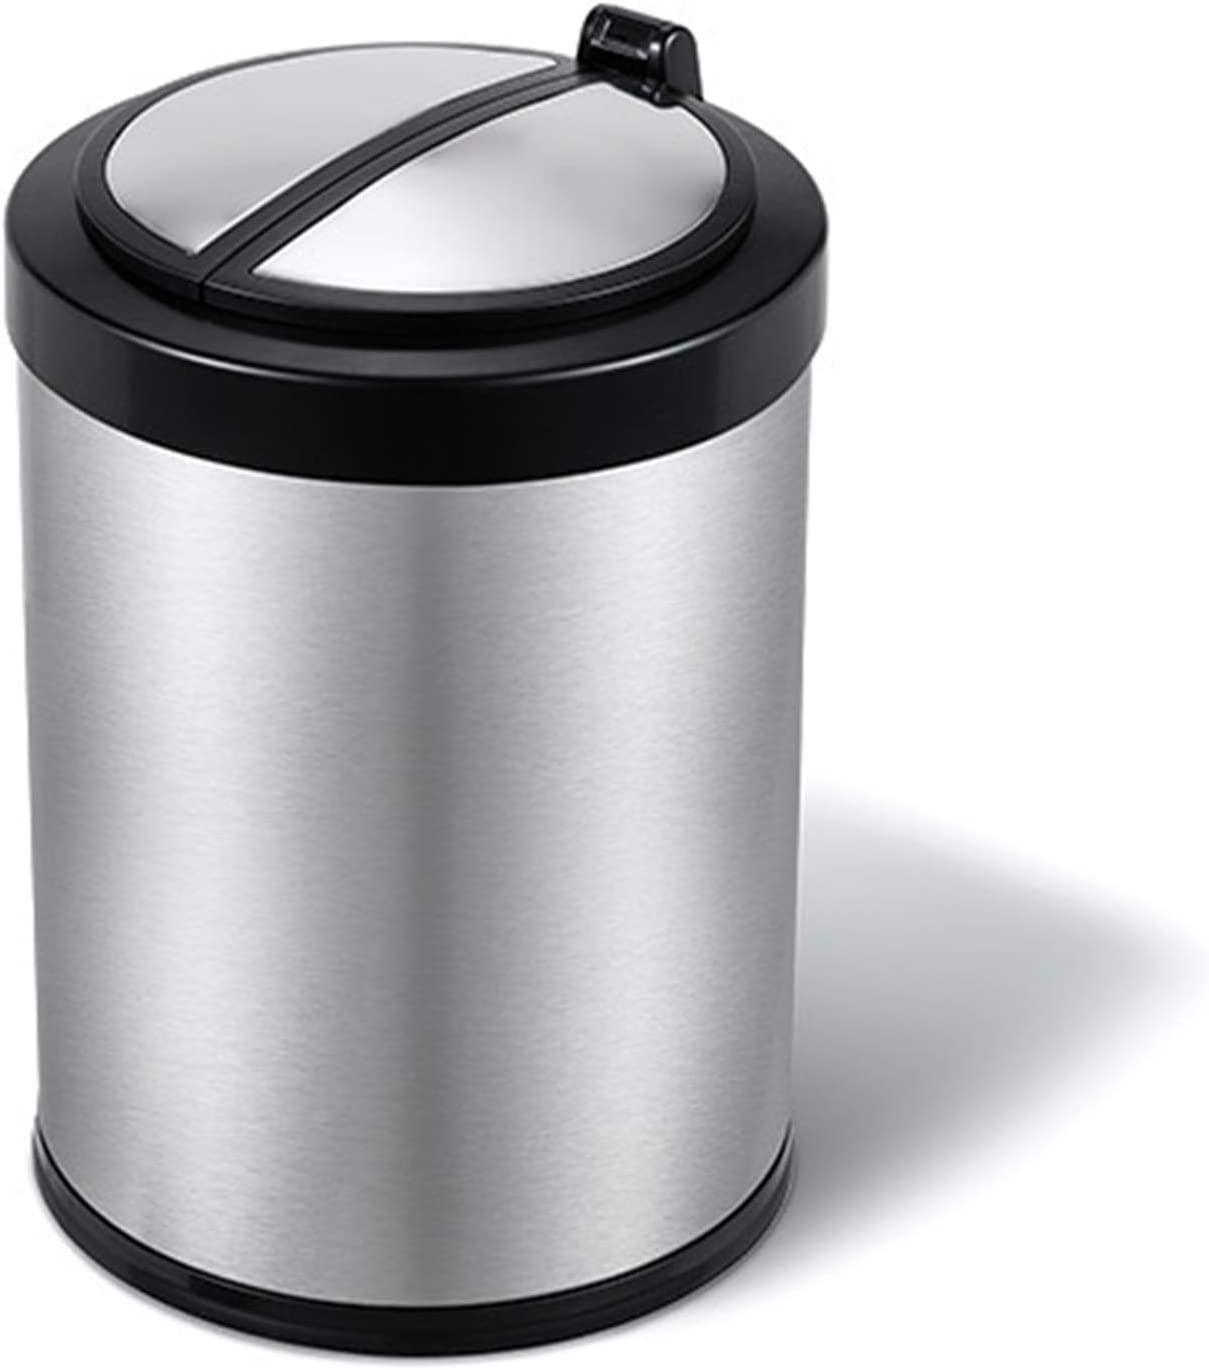 AKwwmy Stainless Steel Smart Trash Can SEAL limited product Gallon Kit Ranking TOP13 Living Room 9